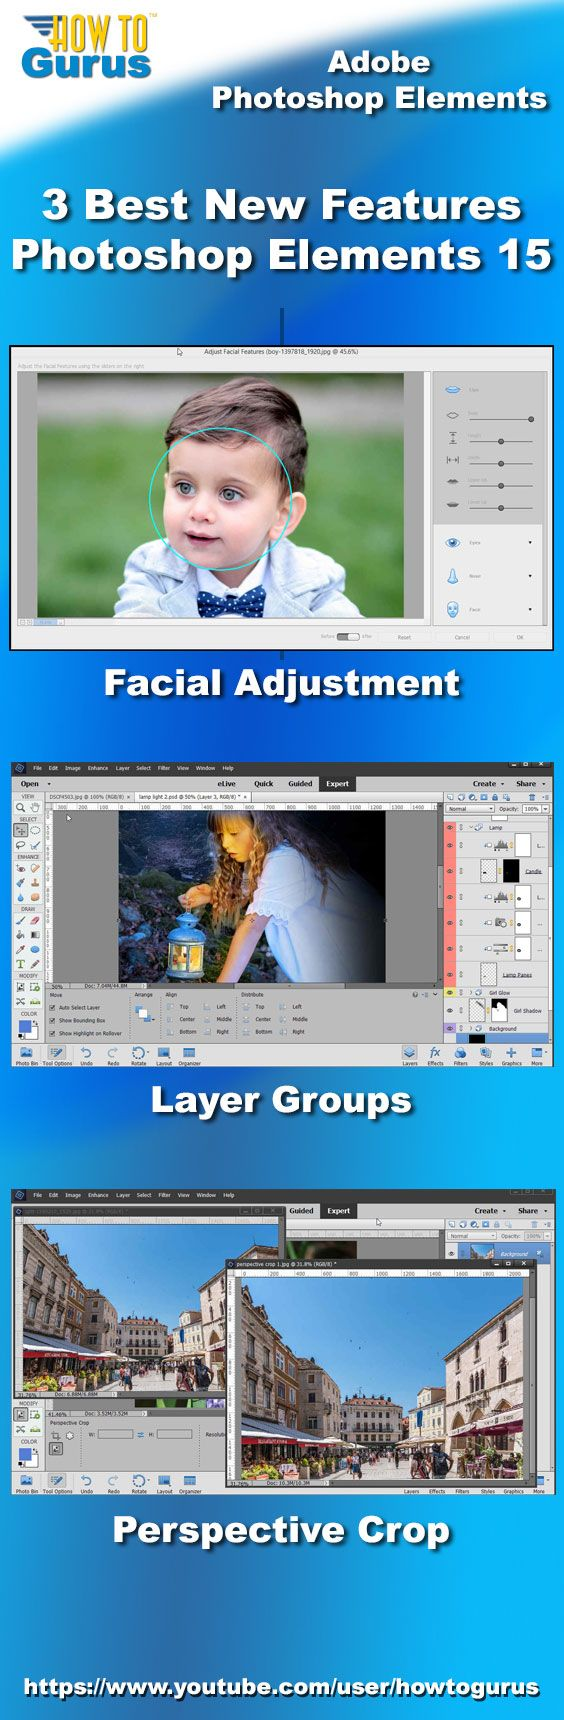 How to fix color cast in photoshop elements - Adobe Photoshop Elements 15 3 Best New Features Explained And Demonstrated